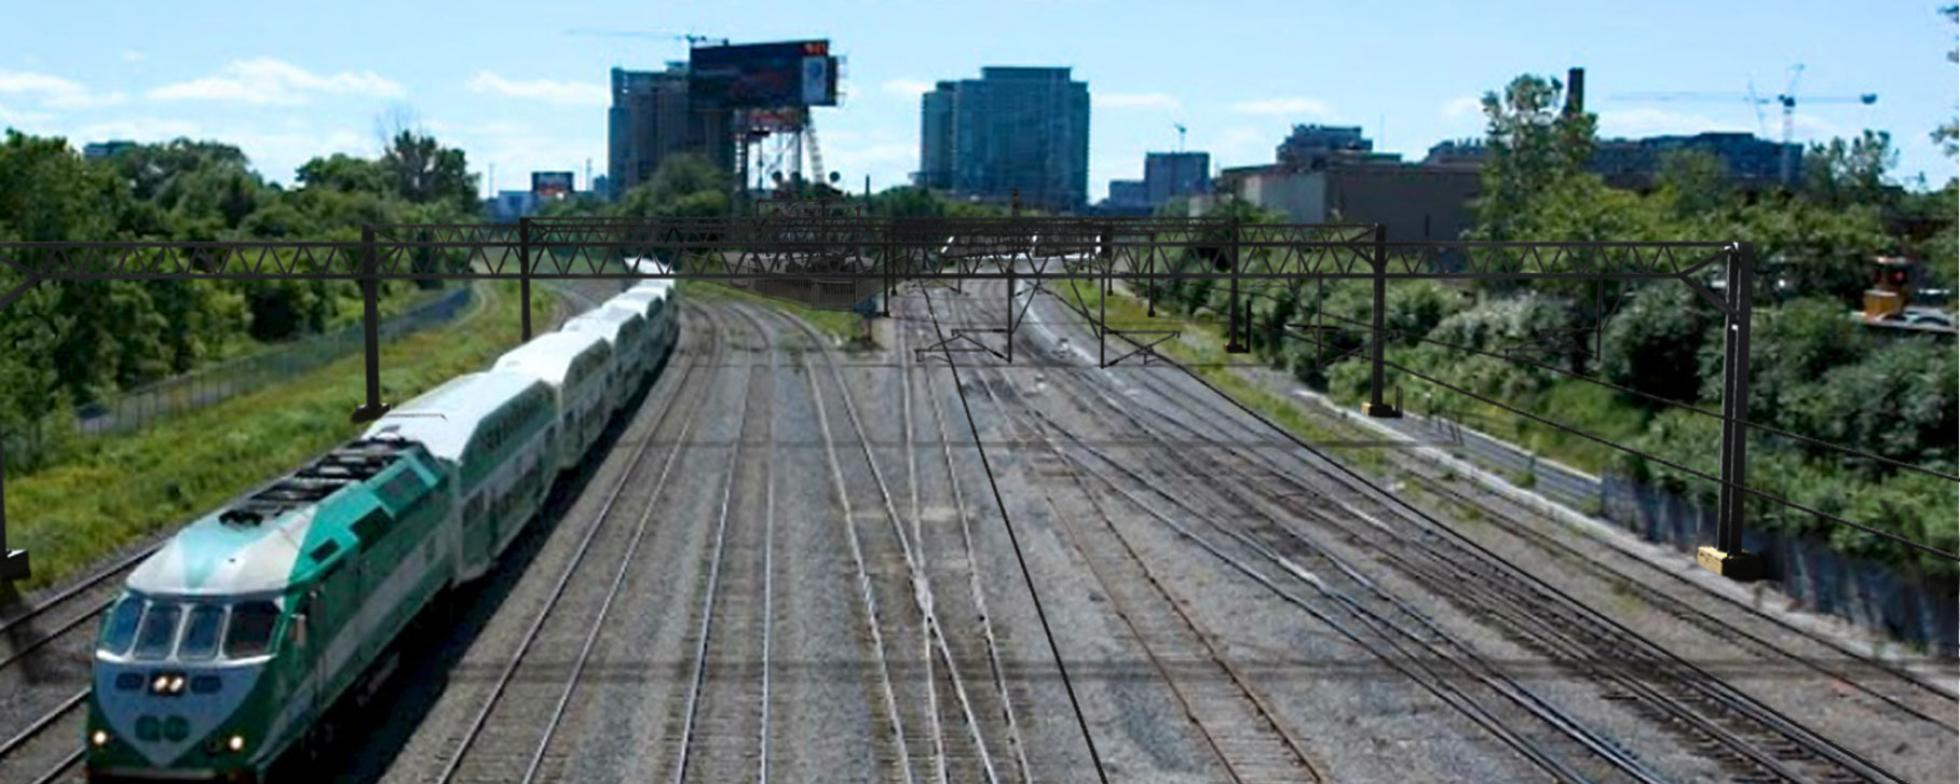 Rail corridor with a conventionally powered train